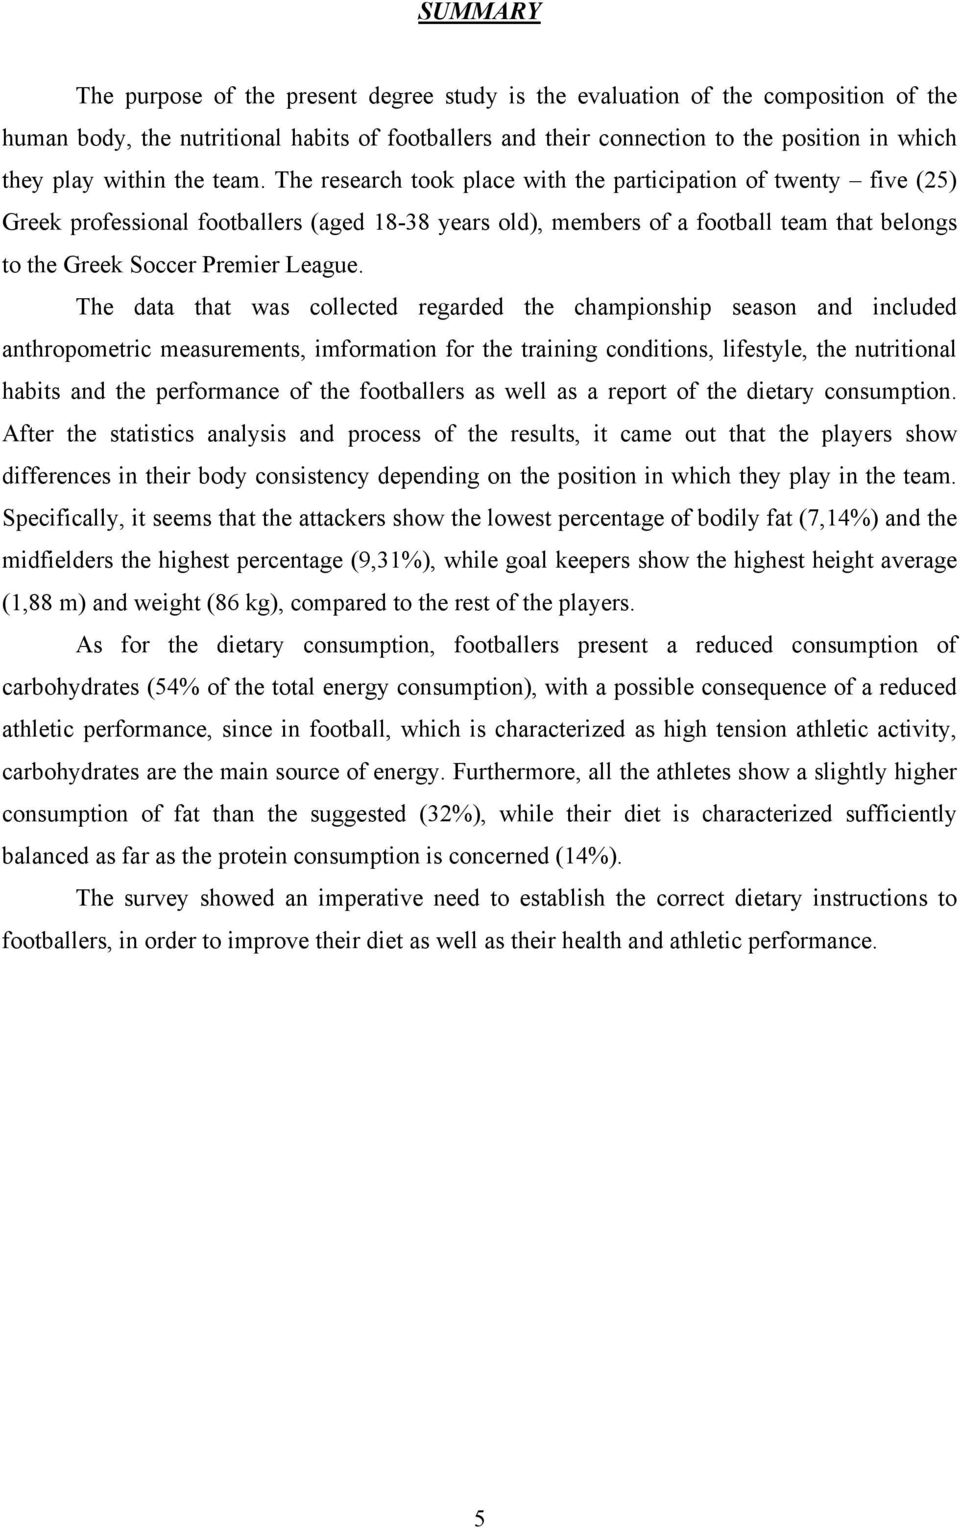 The research took place with the participation of twenty five (25) Greek professional footballers (aged 18-38 years old), members of a football team that belongs to the Greek Soccer Premier League.